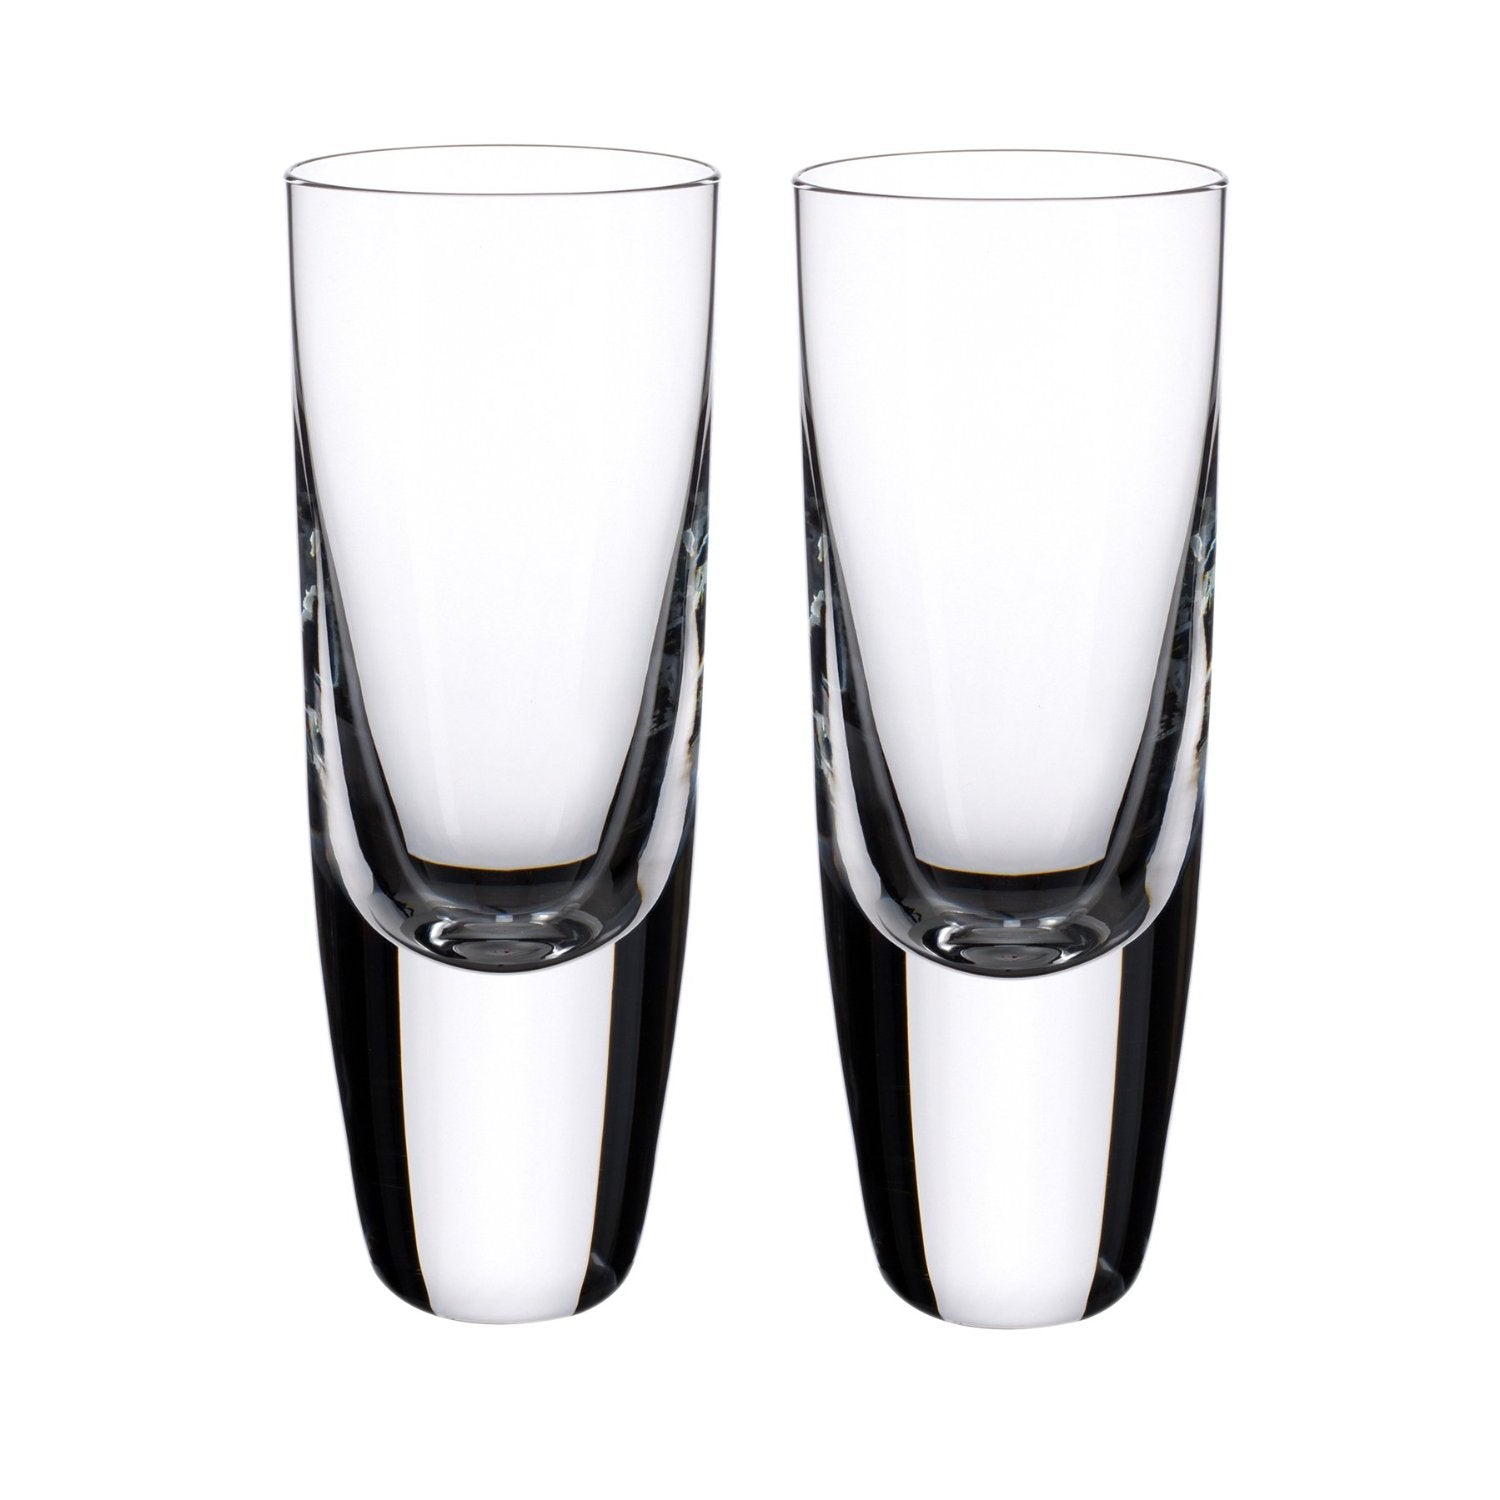 Villeroy & Boch American Bar Straight Bourbon 5-1/2 Inch Shot Tumbler, Set of 2